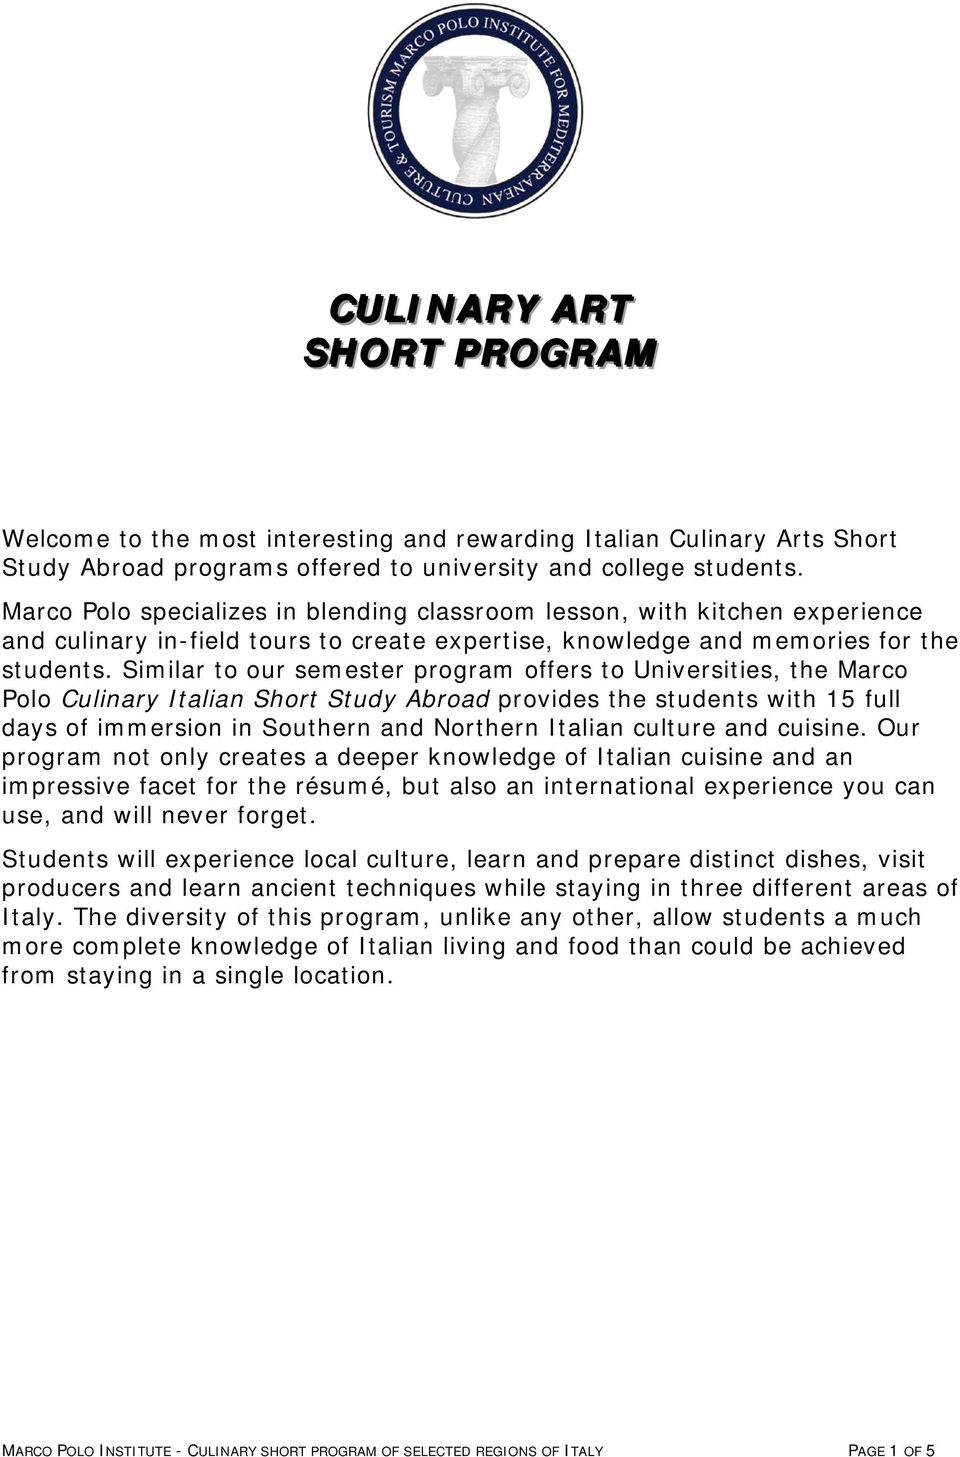 Similar to our semester program offers to Universities, the Marco Polo Culinary Italian Short Study Abroad provides the students with 15 full days of immersion in Southern and Northern Italian